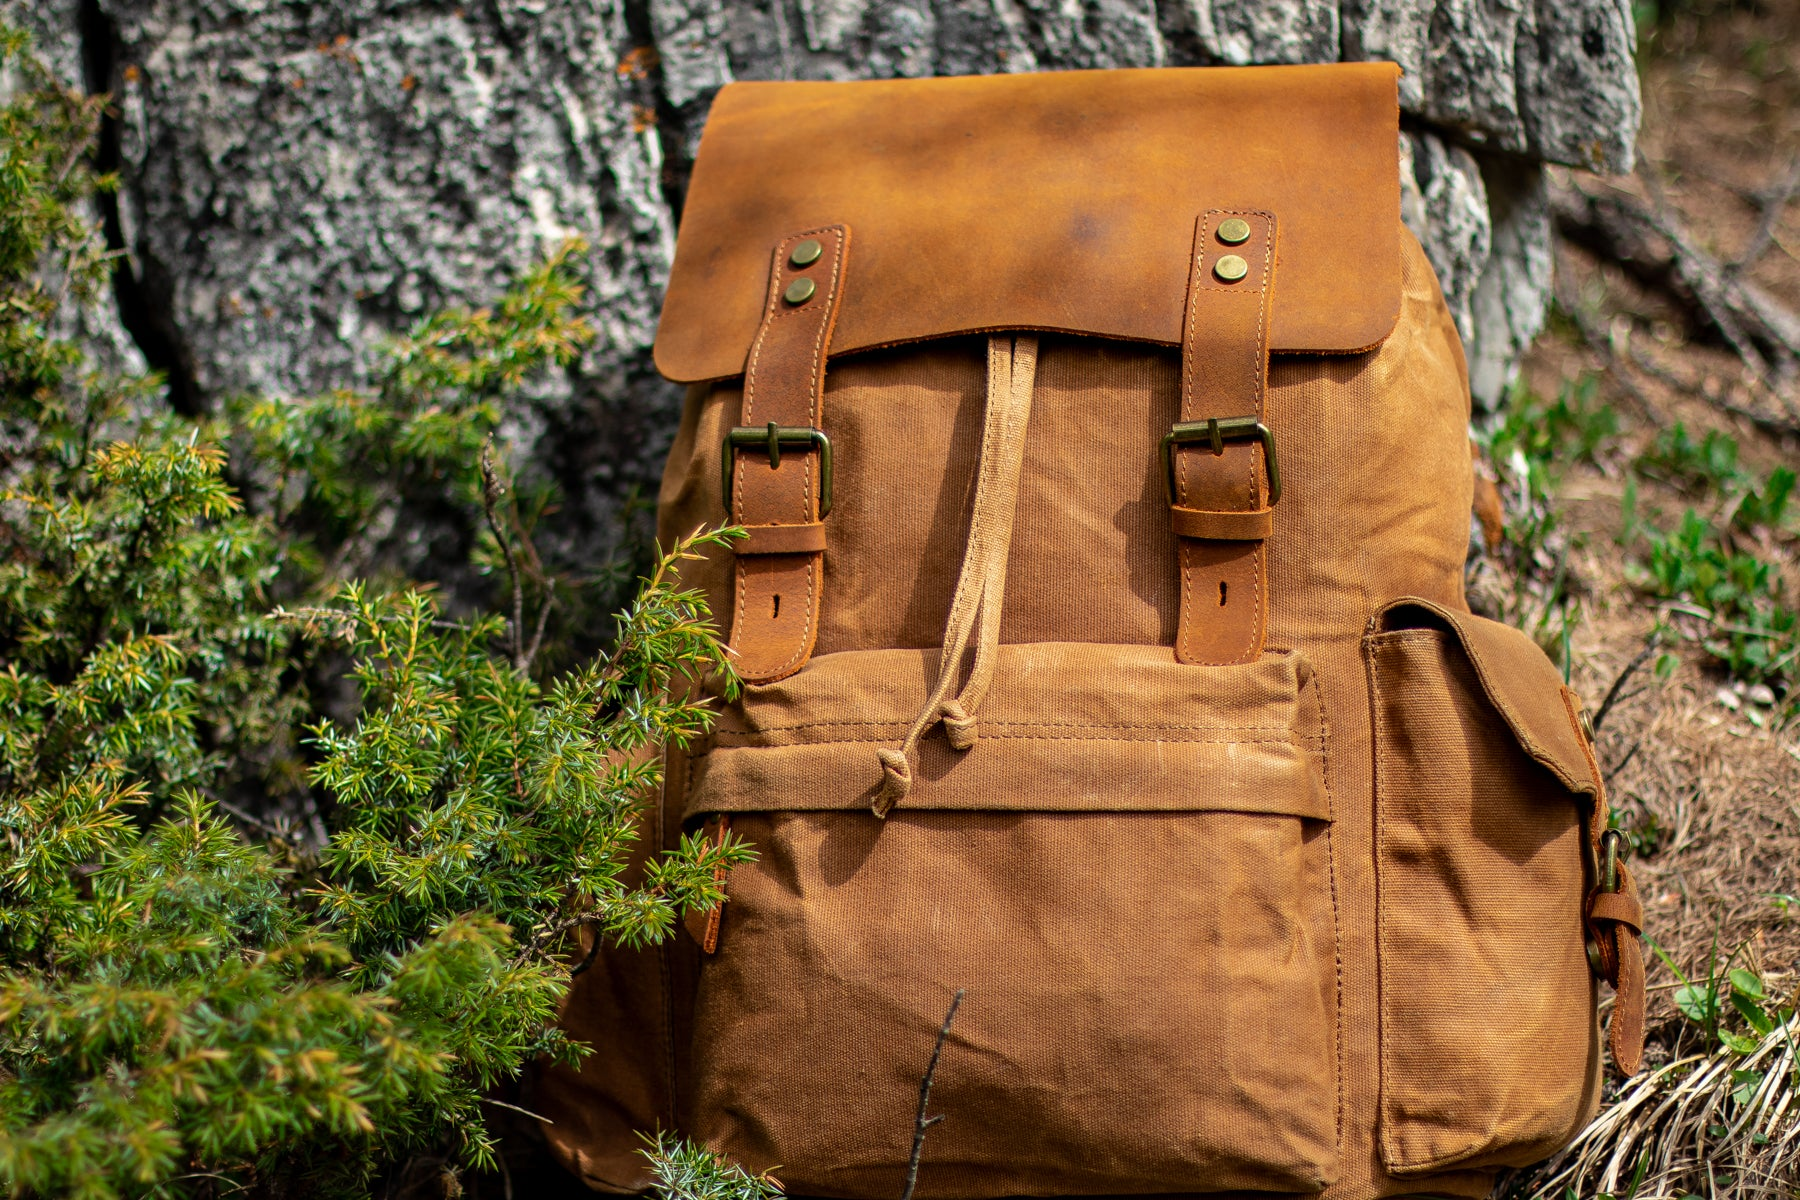 travel waxed canvas and leather backpack for men and women laying on a rock